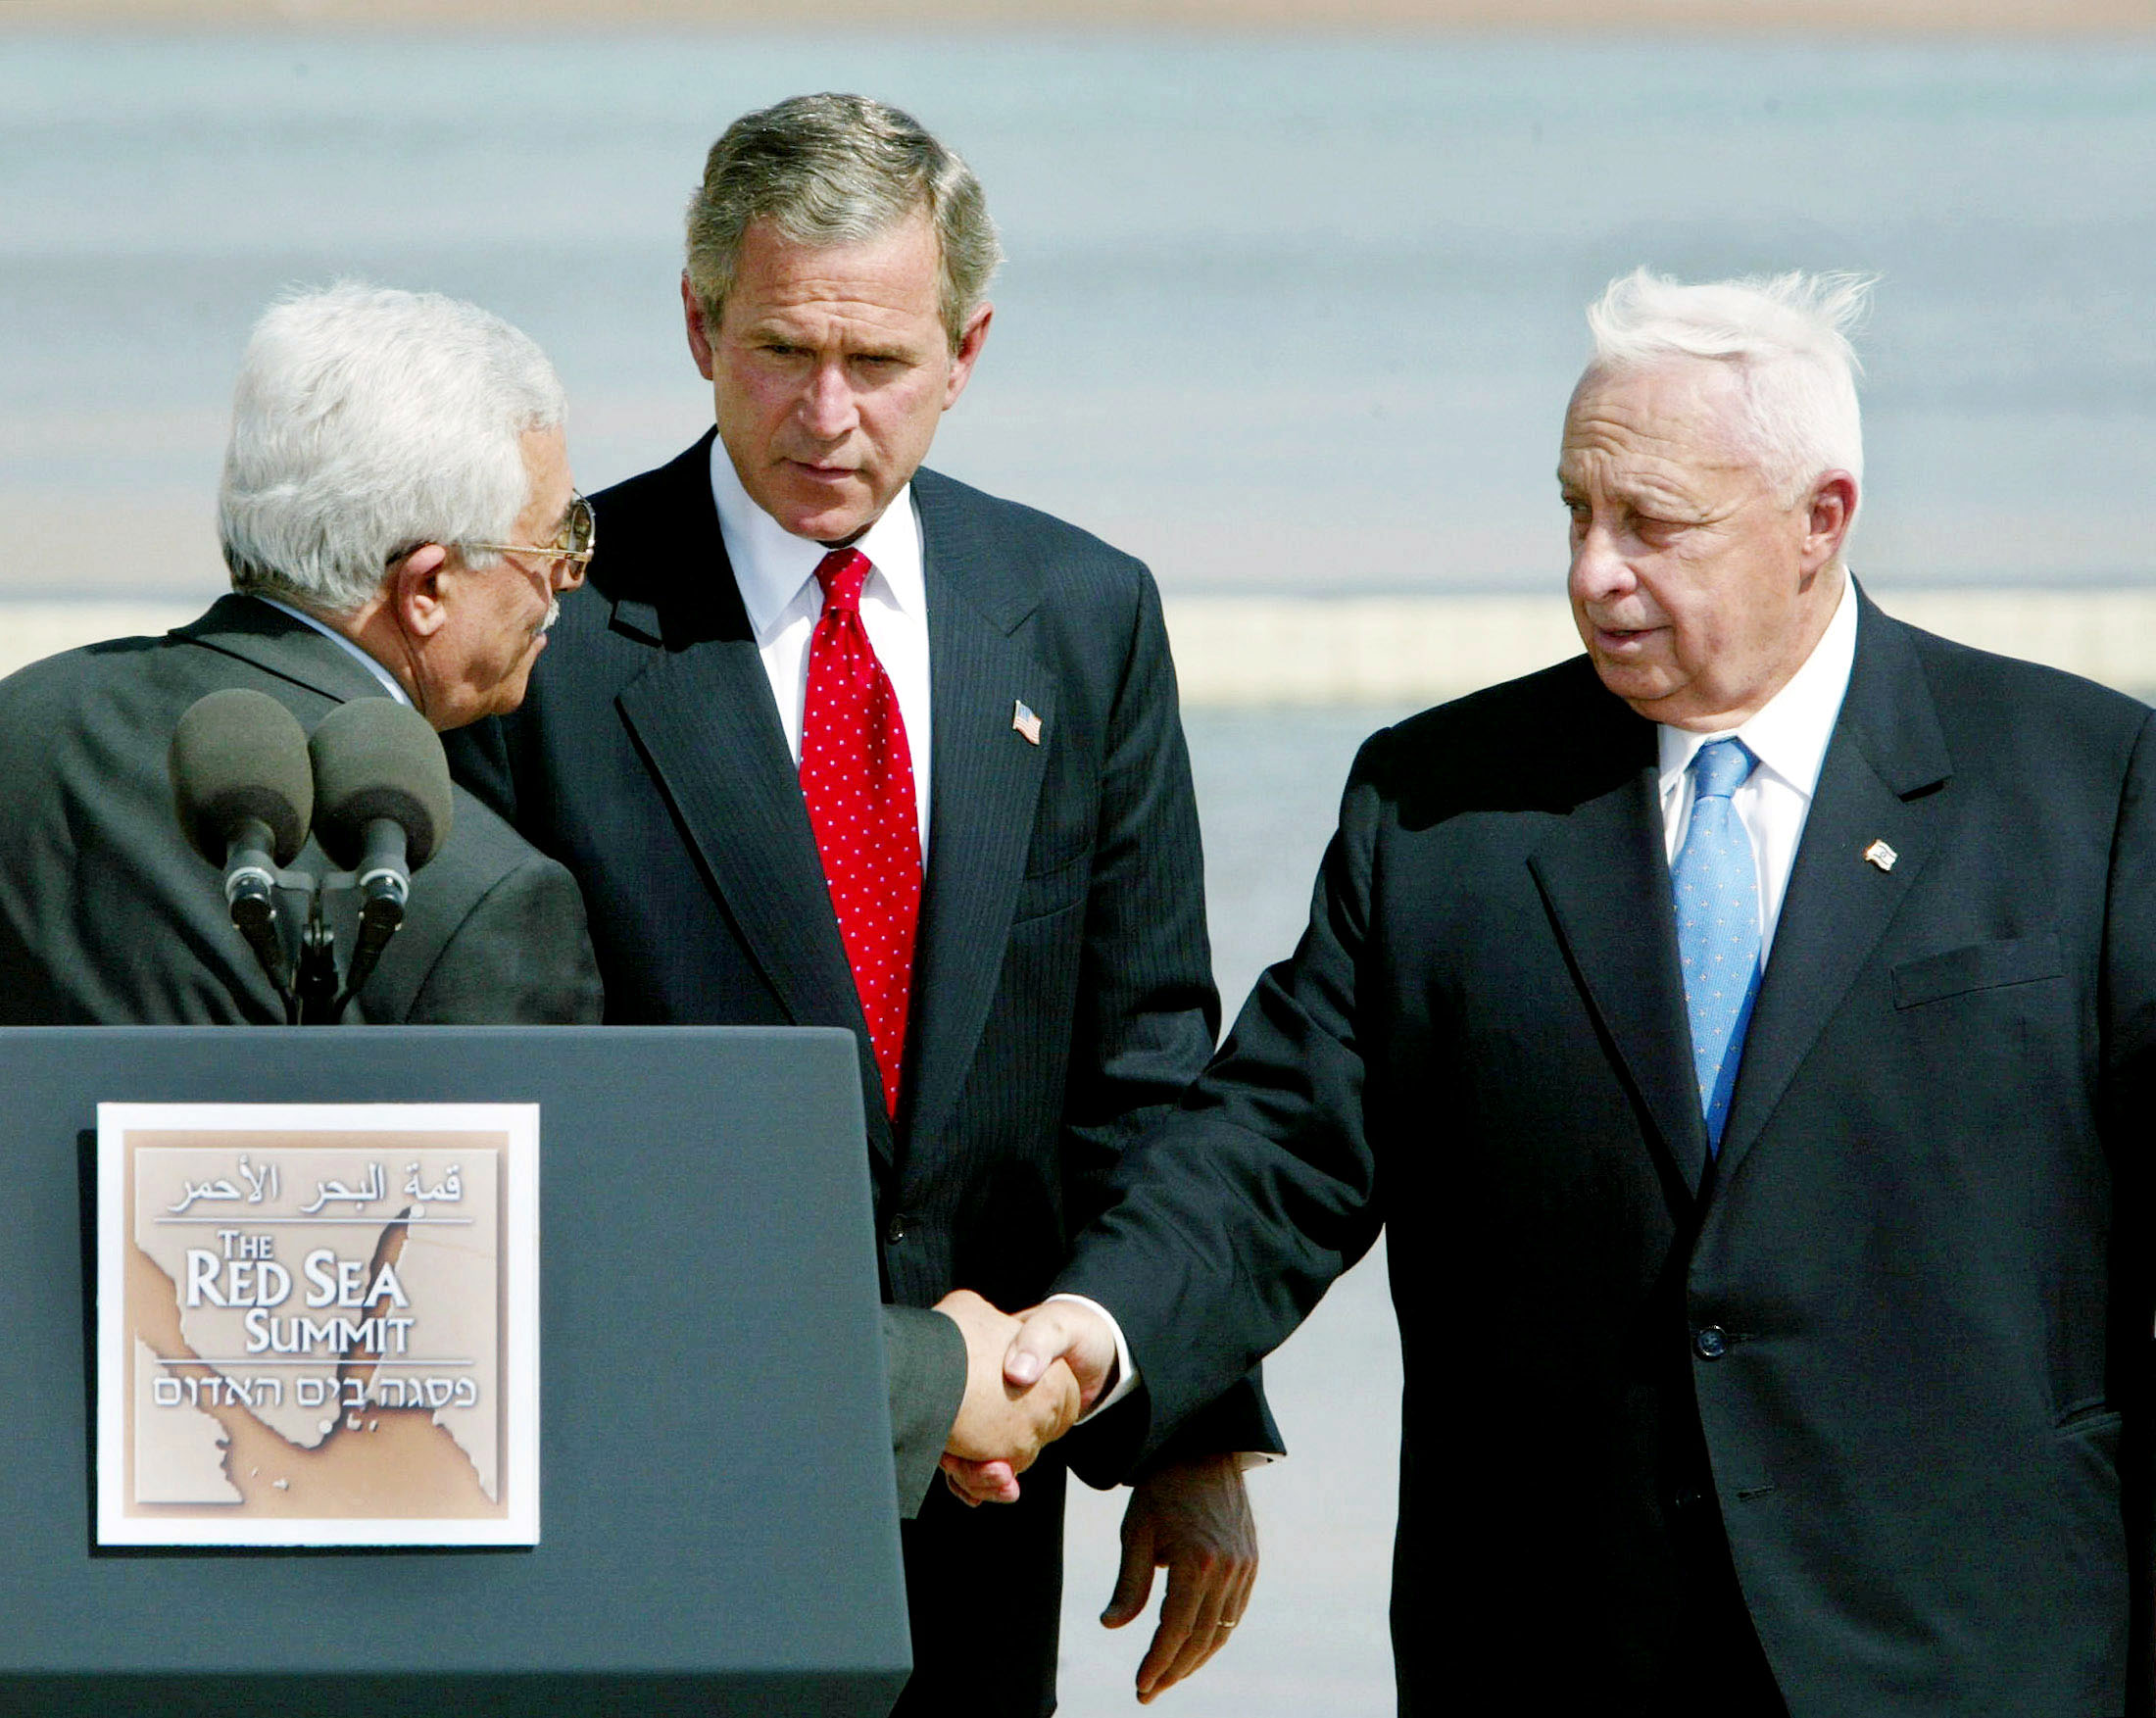 U.S. President George W. Bush (C) watches as Israel Prime Minister Ariel Sharon (R) and Palestinian Authority Prime Minister Mahmoud Abbas (L) shake hands. ©REUTERS/Larry Downing